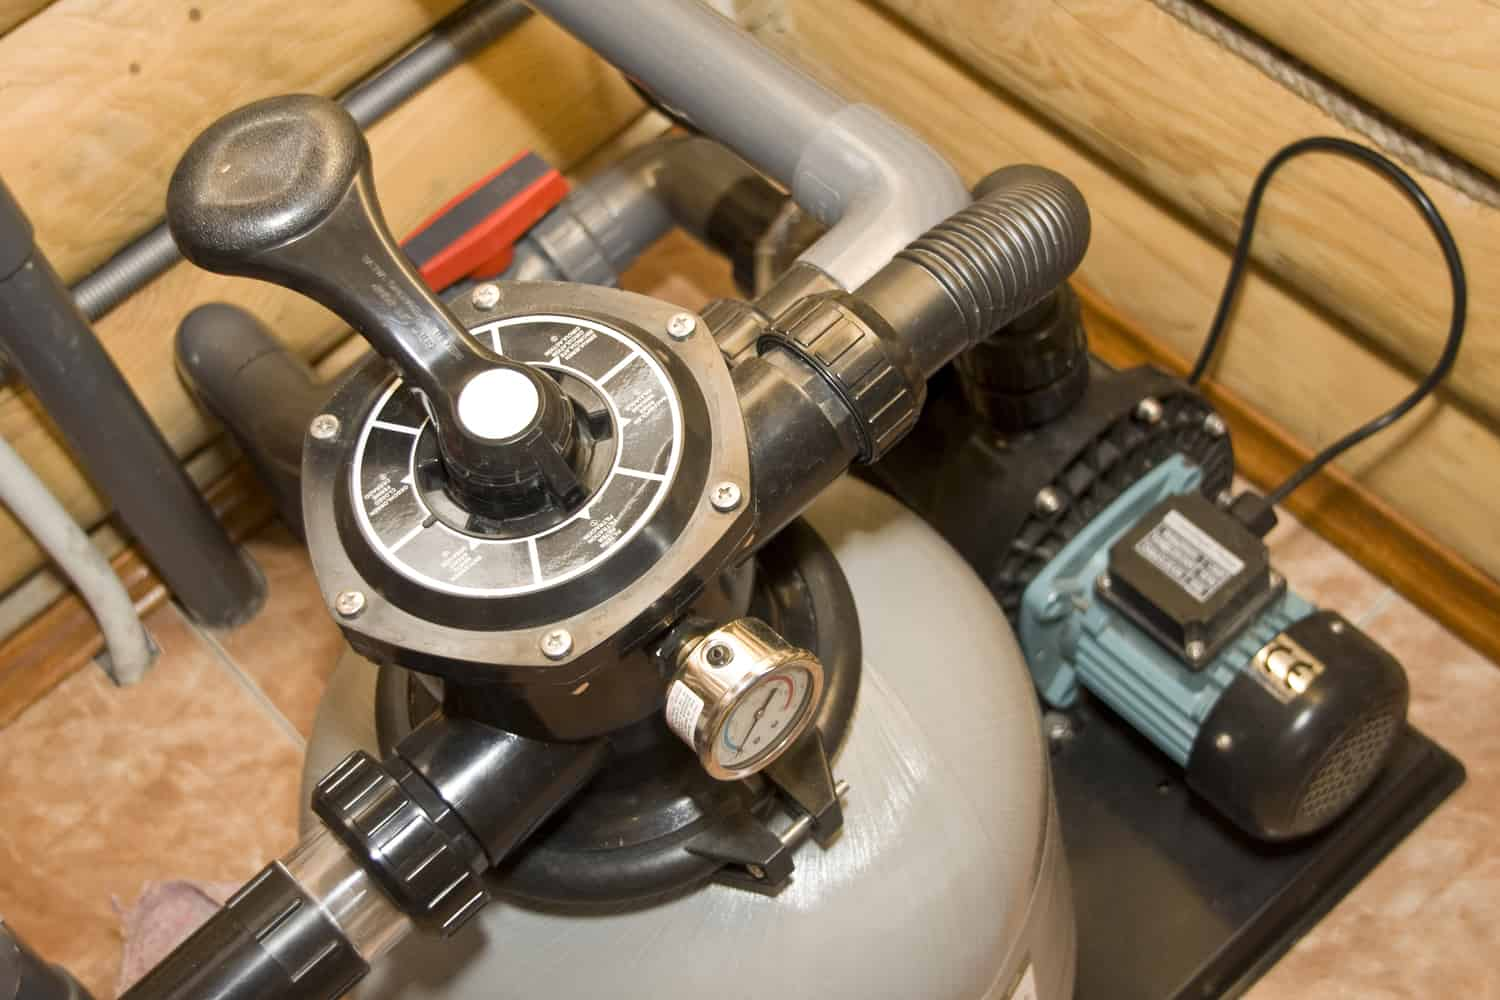 Pool Filter Pump Pressure Too High Best Above Ground Pool Filter A Review Buying Guide For 2019